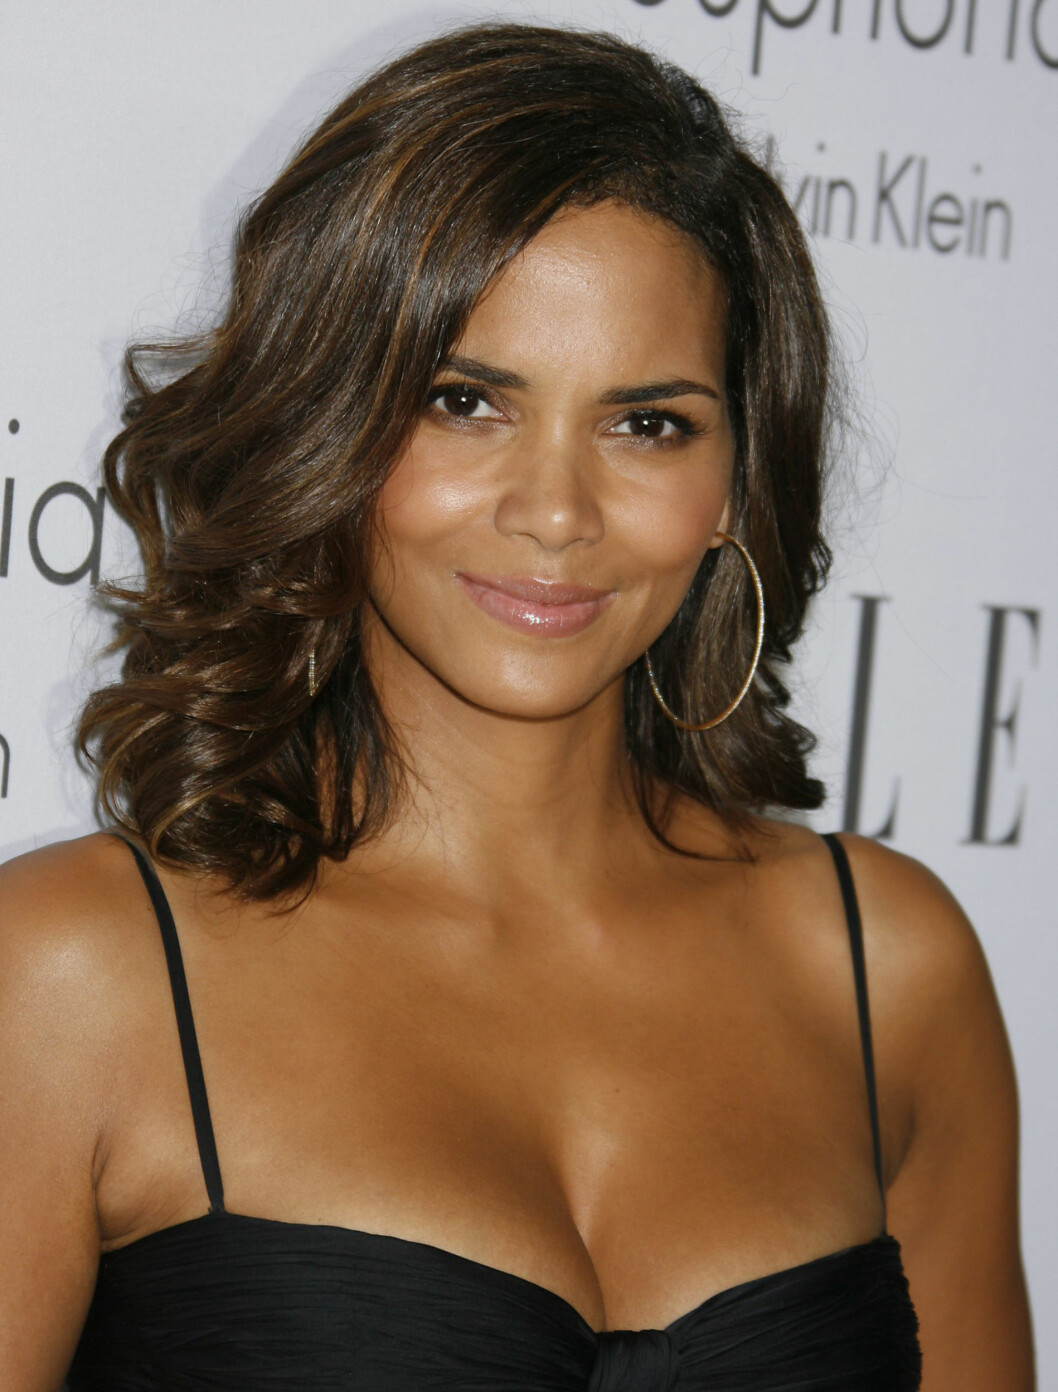 <strong>NUMMER TO:</strong> Halle Berry. Foto: STELLA PICTURES